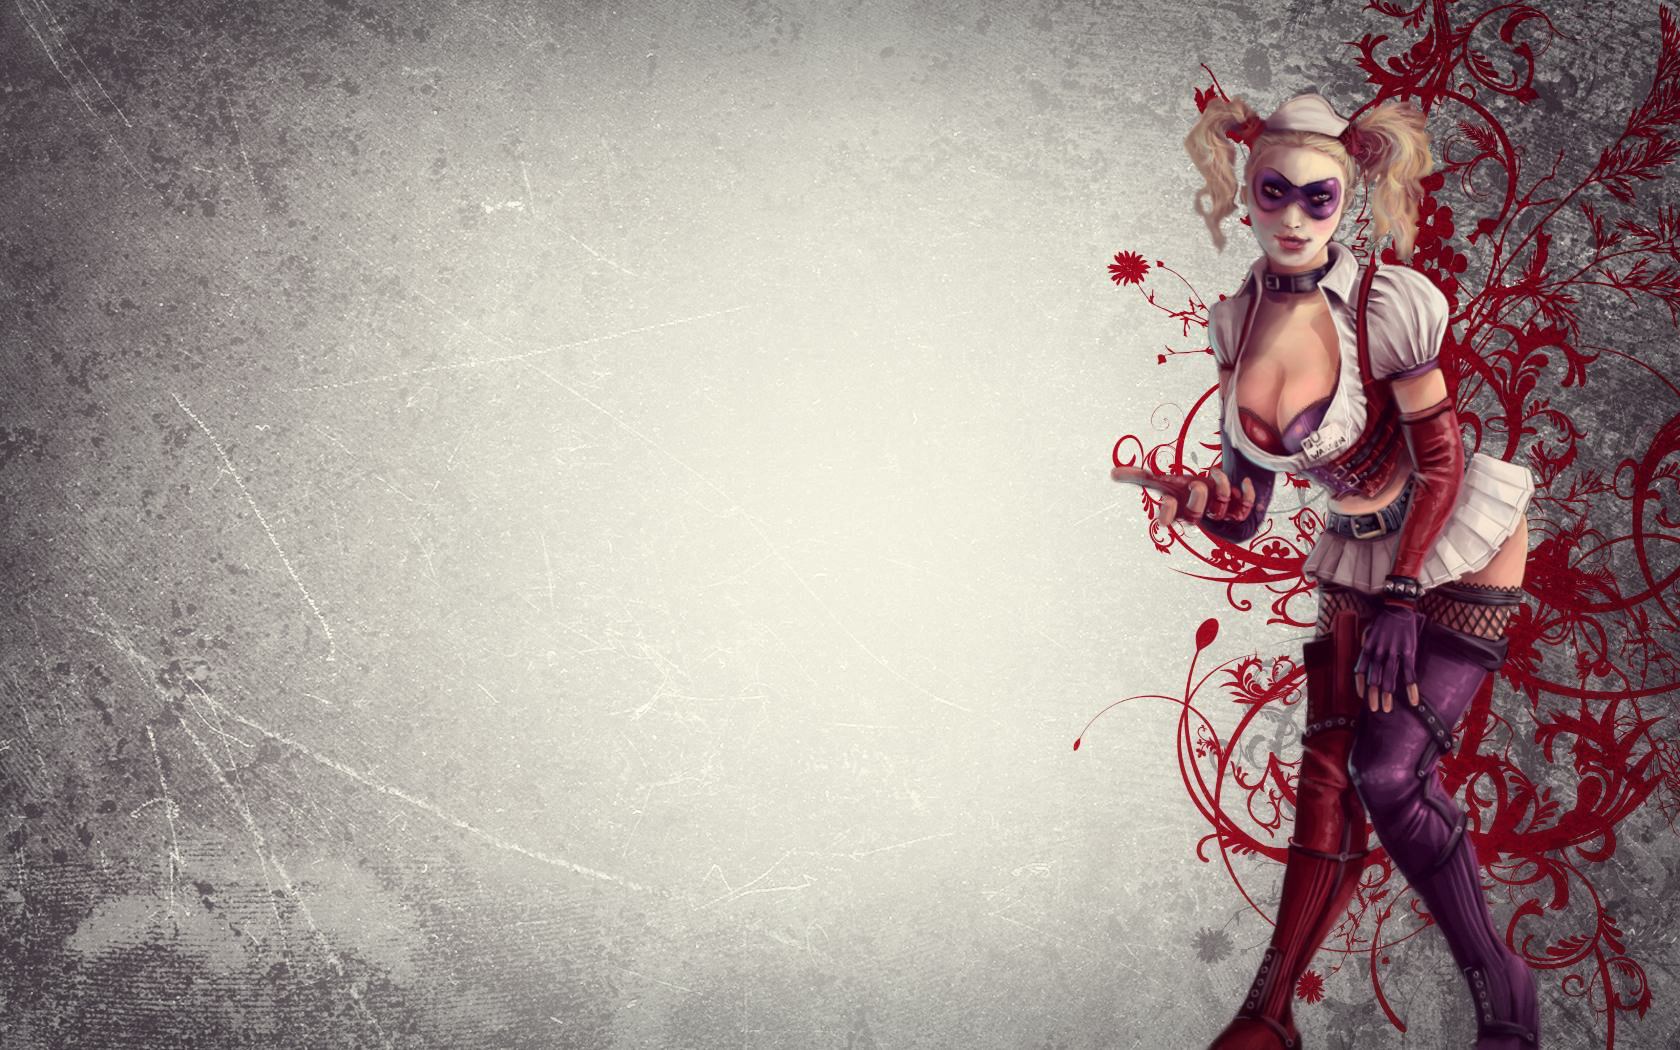 harley quinn wallpaper requested by nolan989890 on